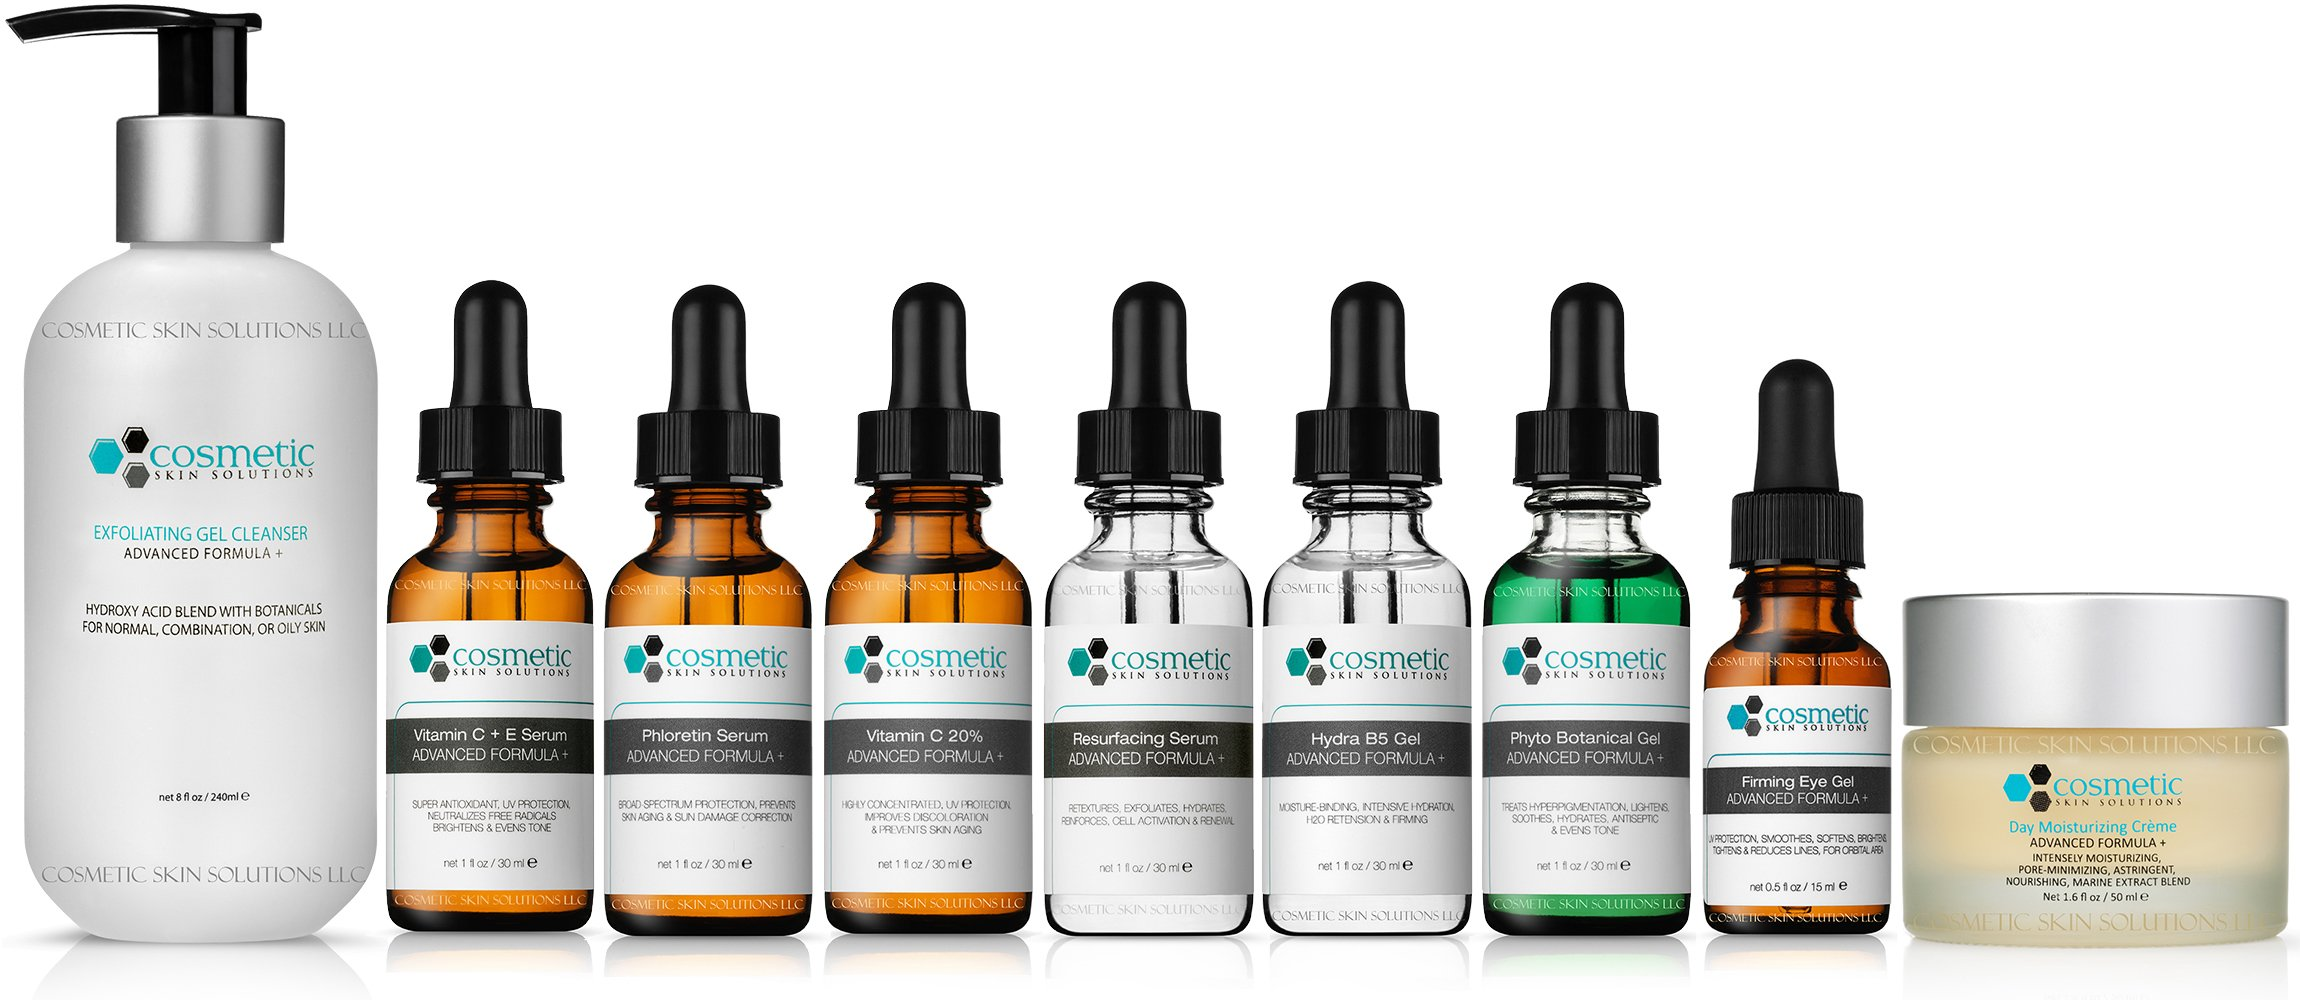 9 Combo Pack Includes EXCLUSIVE SET - Cleanser, Vitamin C+E, Phloretin, C 20%, Resurface, Phyto, B5, Eye, Moisturizer, Advanced Formula, ULTIMATE ANTI-AGING Topical Antioxidants